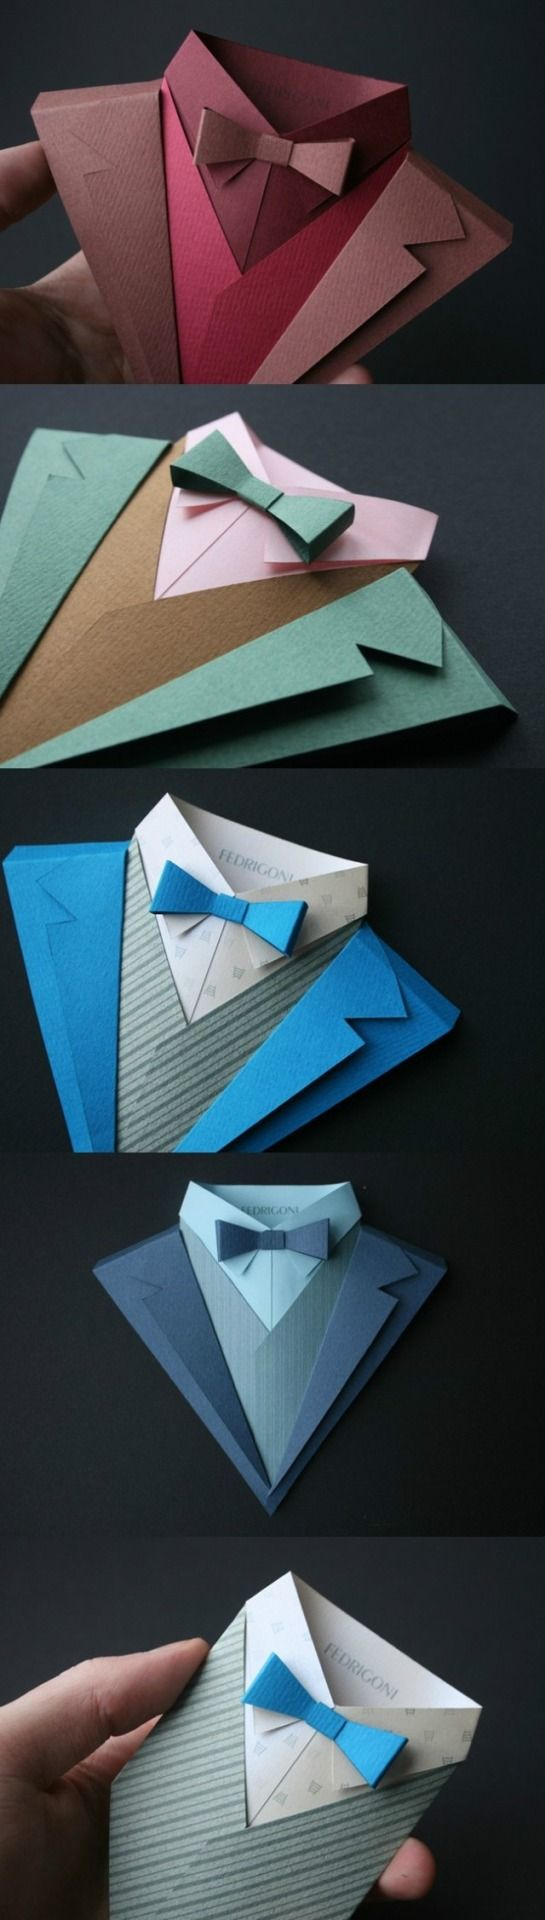 folded paper mens suits